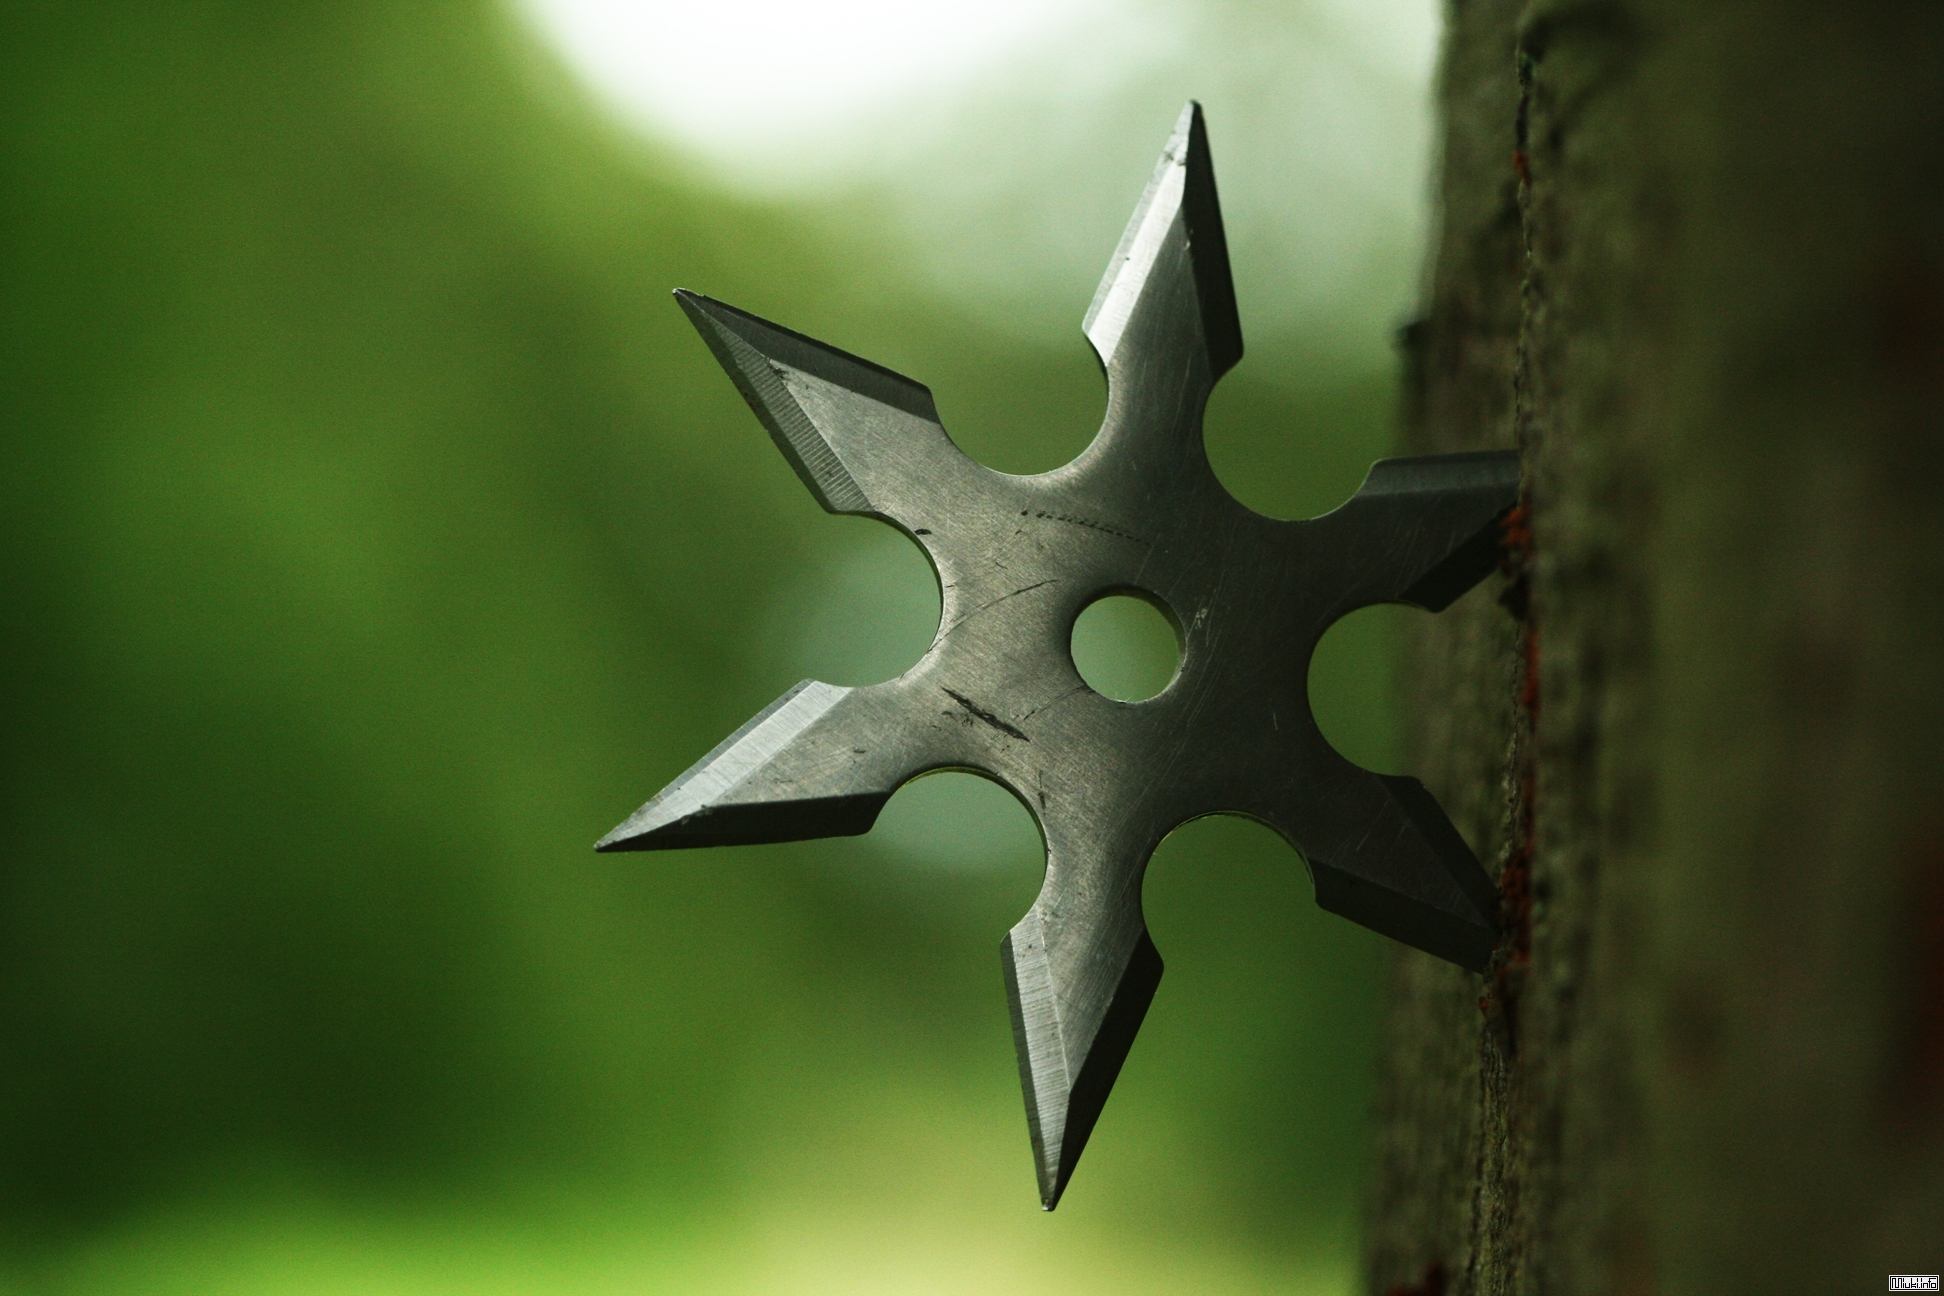 1 Shuriken HD Wallpapers | Backgrounds - Wallpaper Abyss